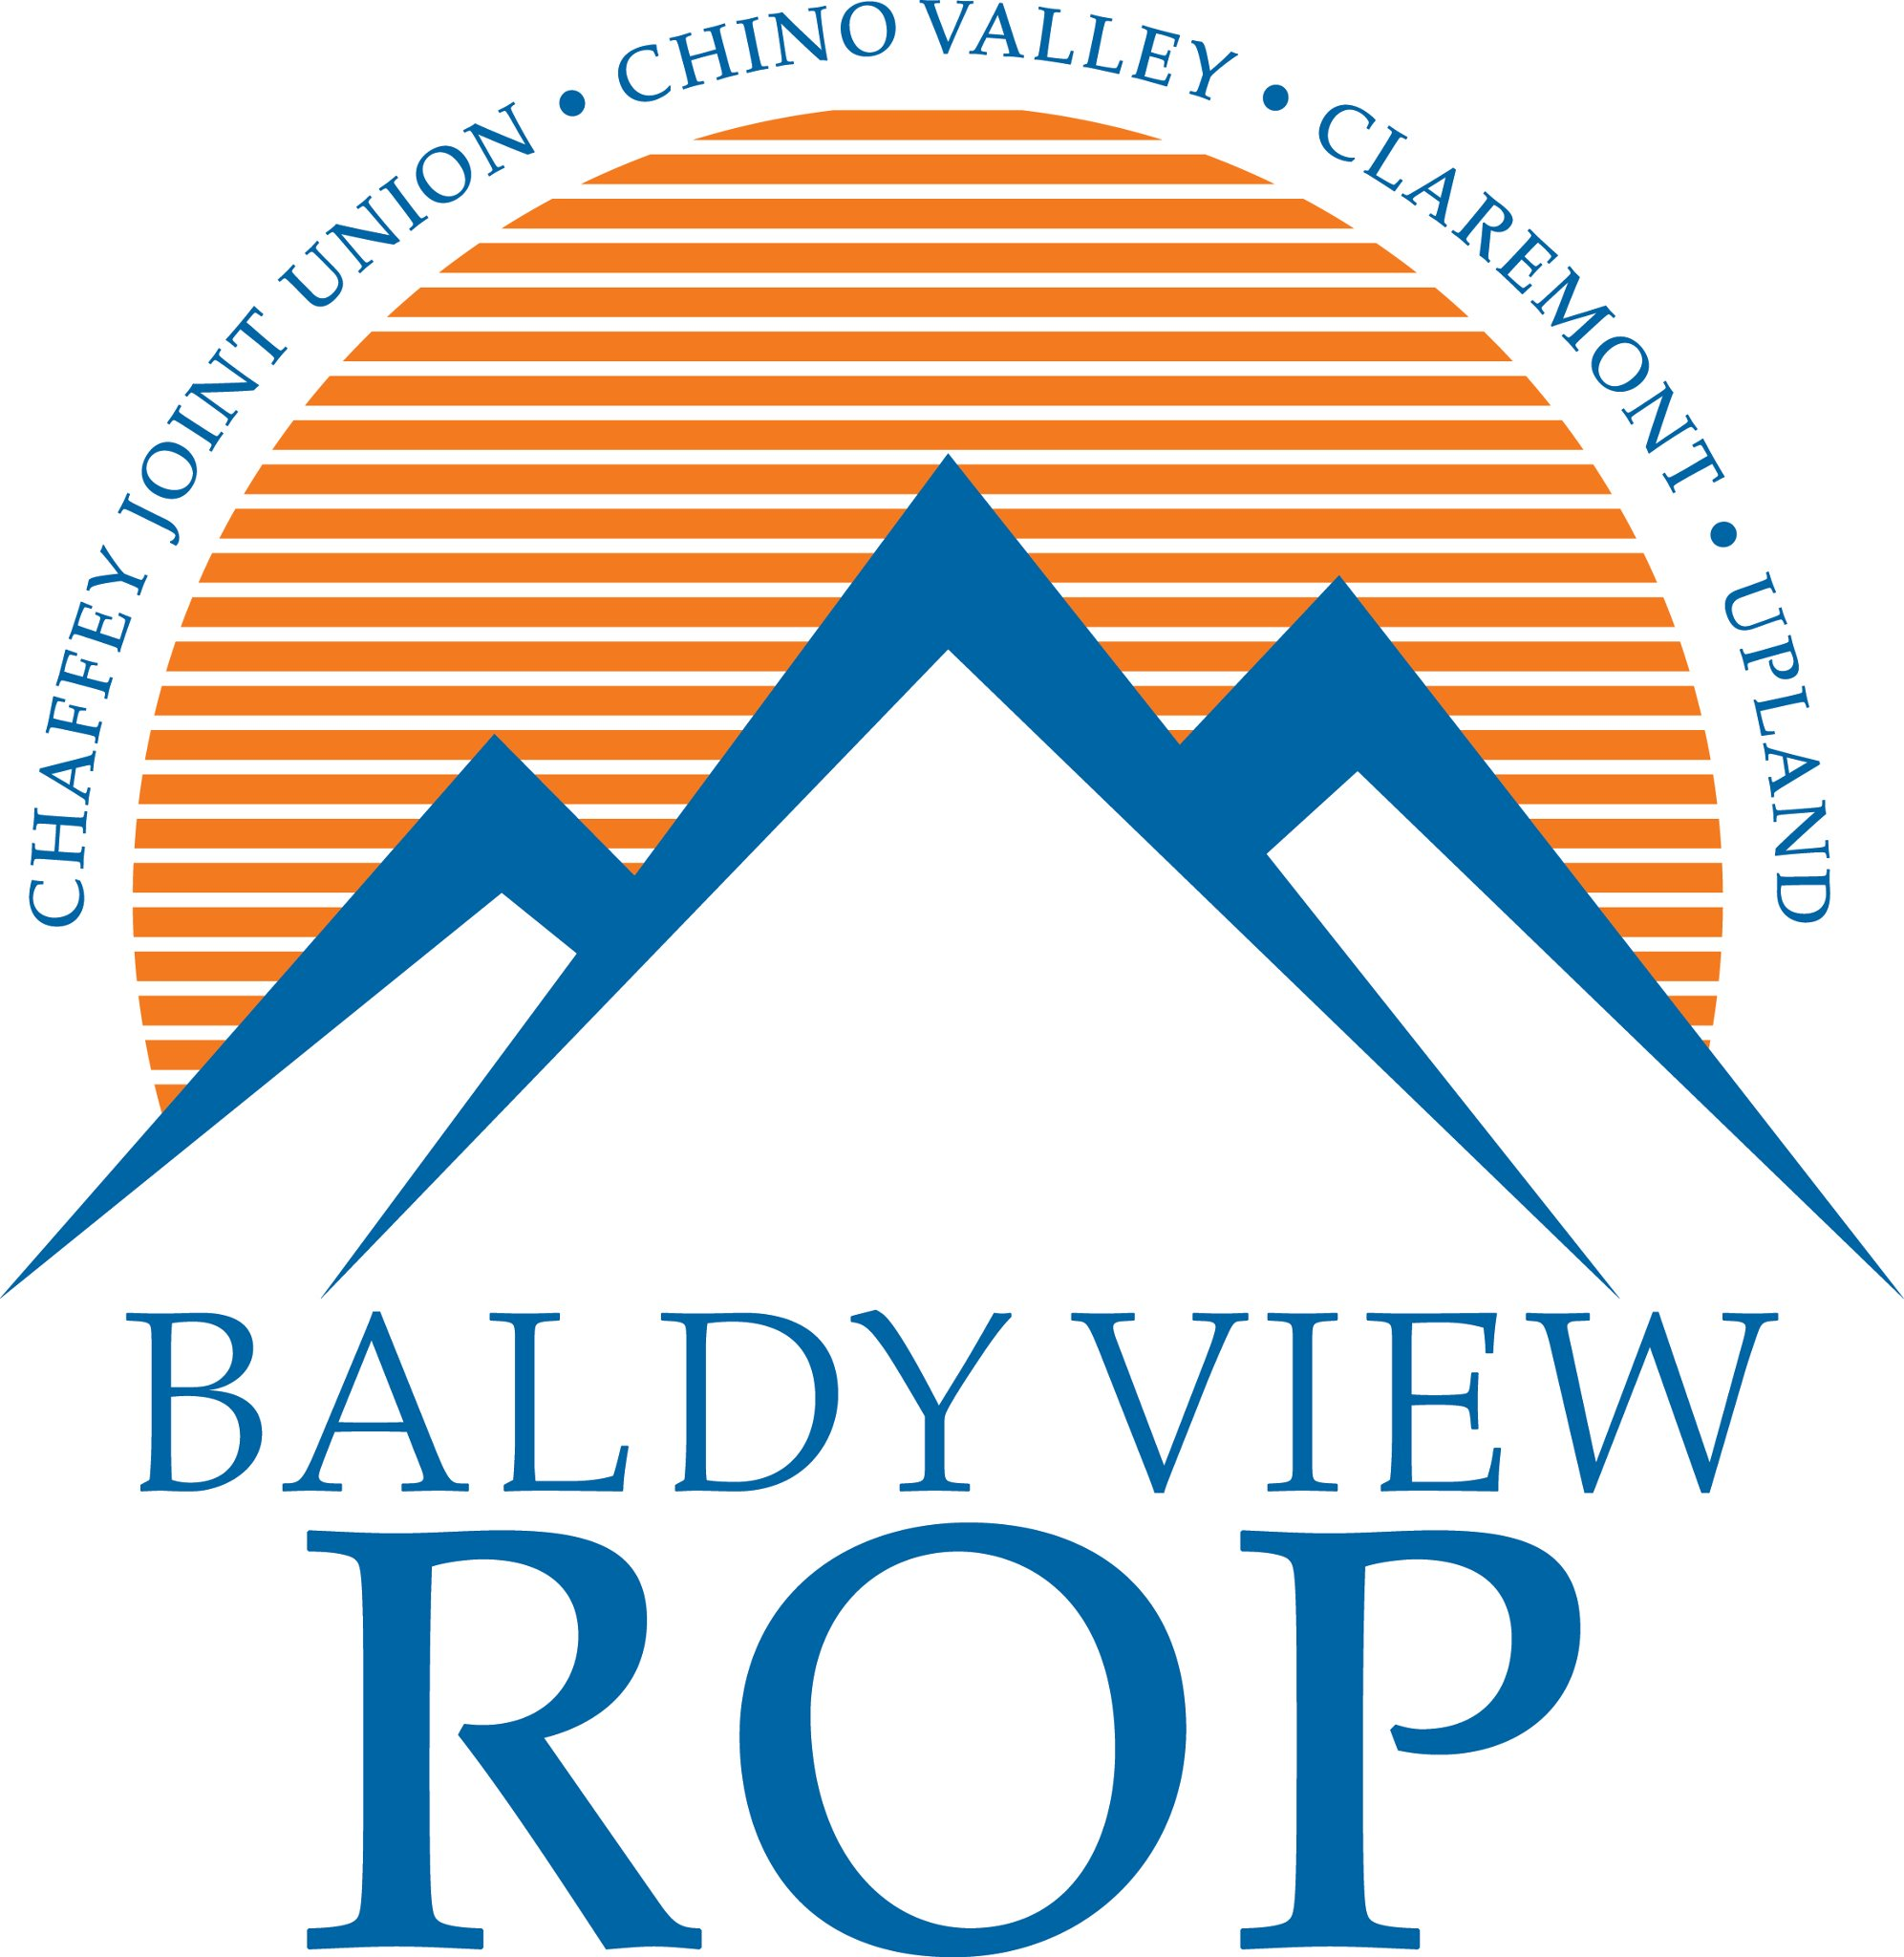 Baldy View ROP Community Open House and Career Fair